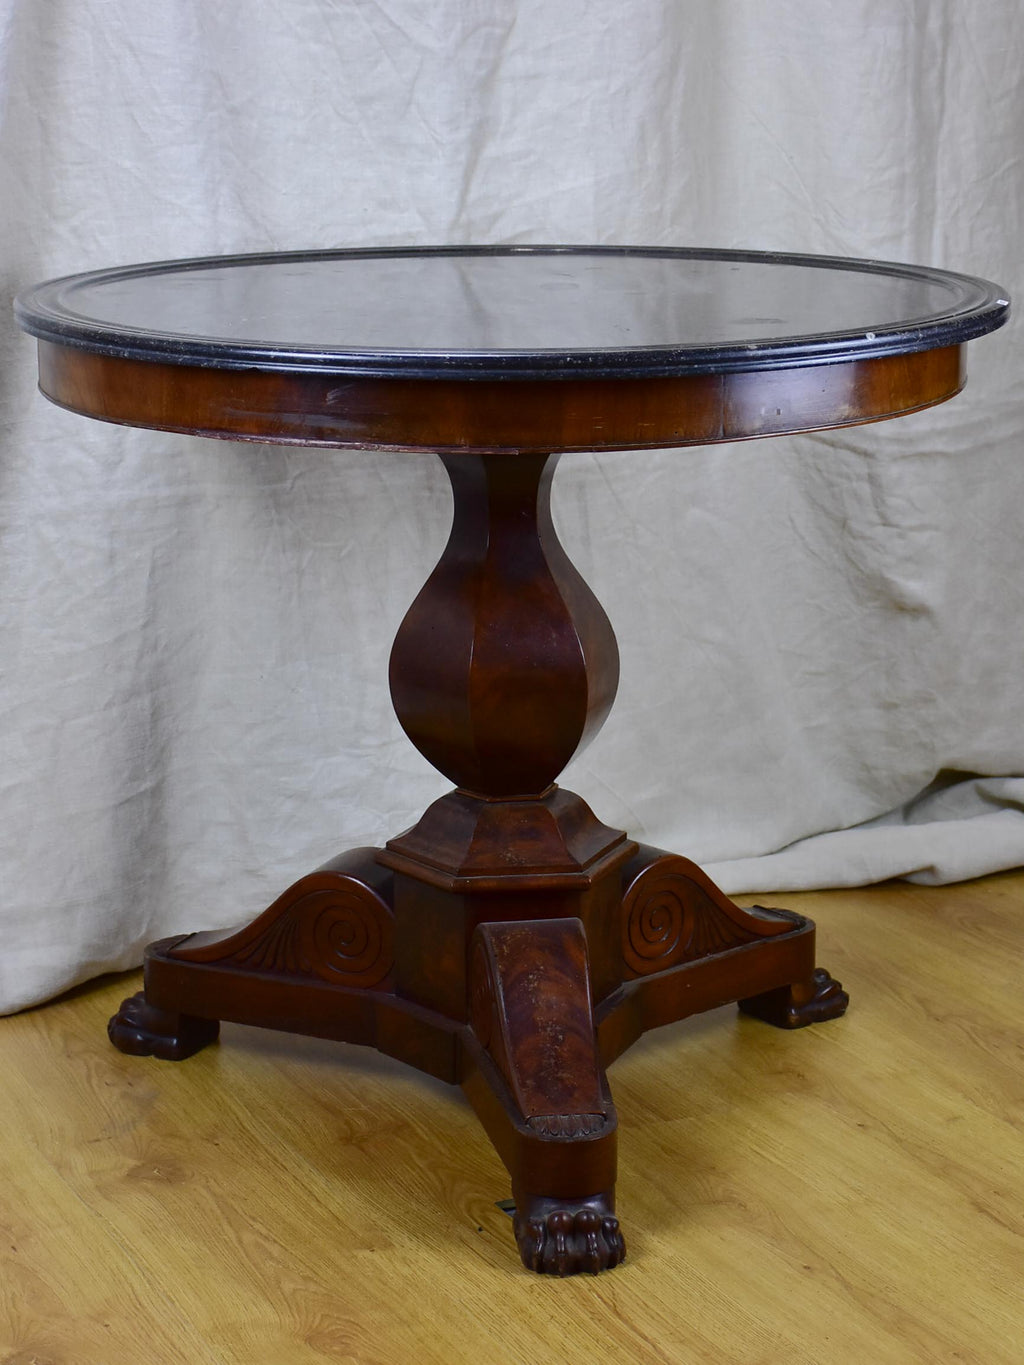 19th Century black marble top entry table with claw feet